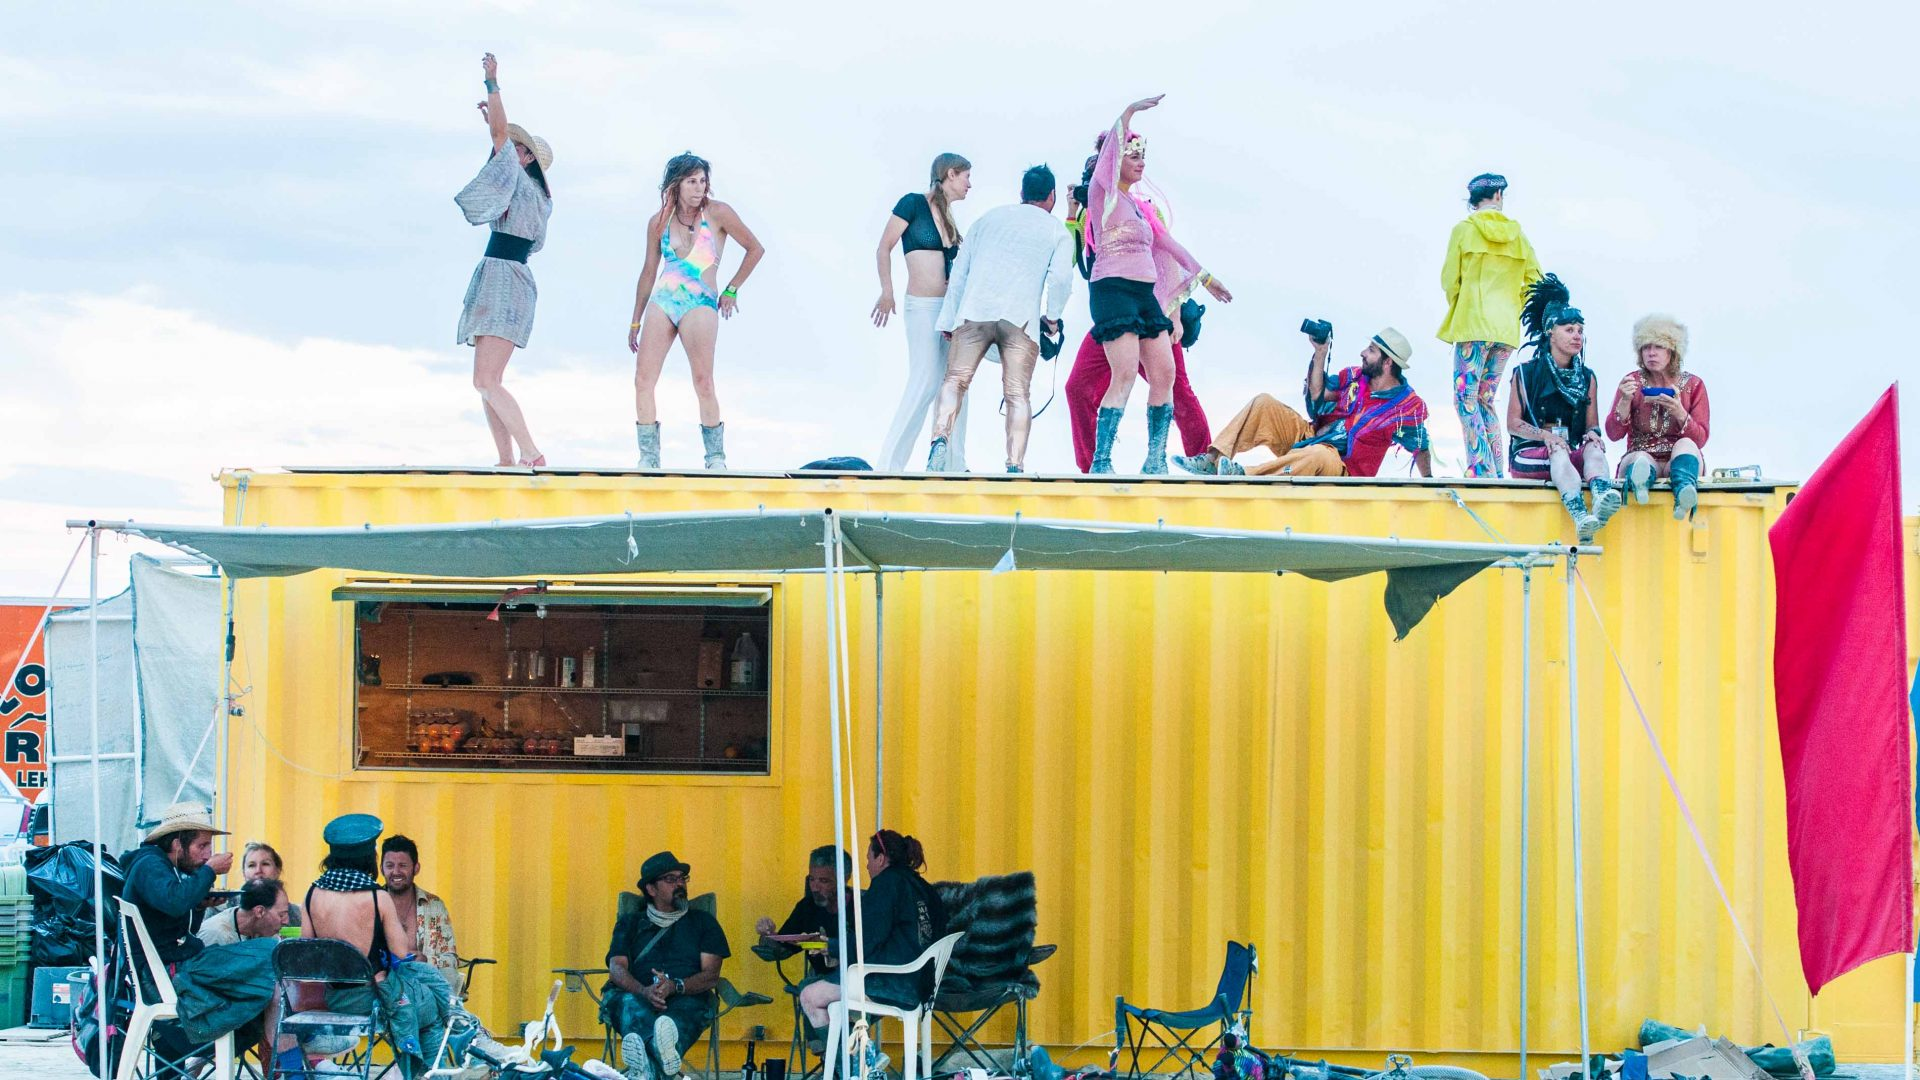 Attendees of Burning Man spend the afternoon dancing on their cargo container.